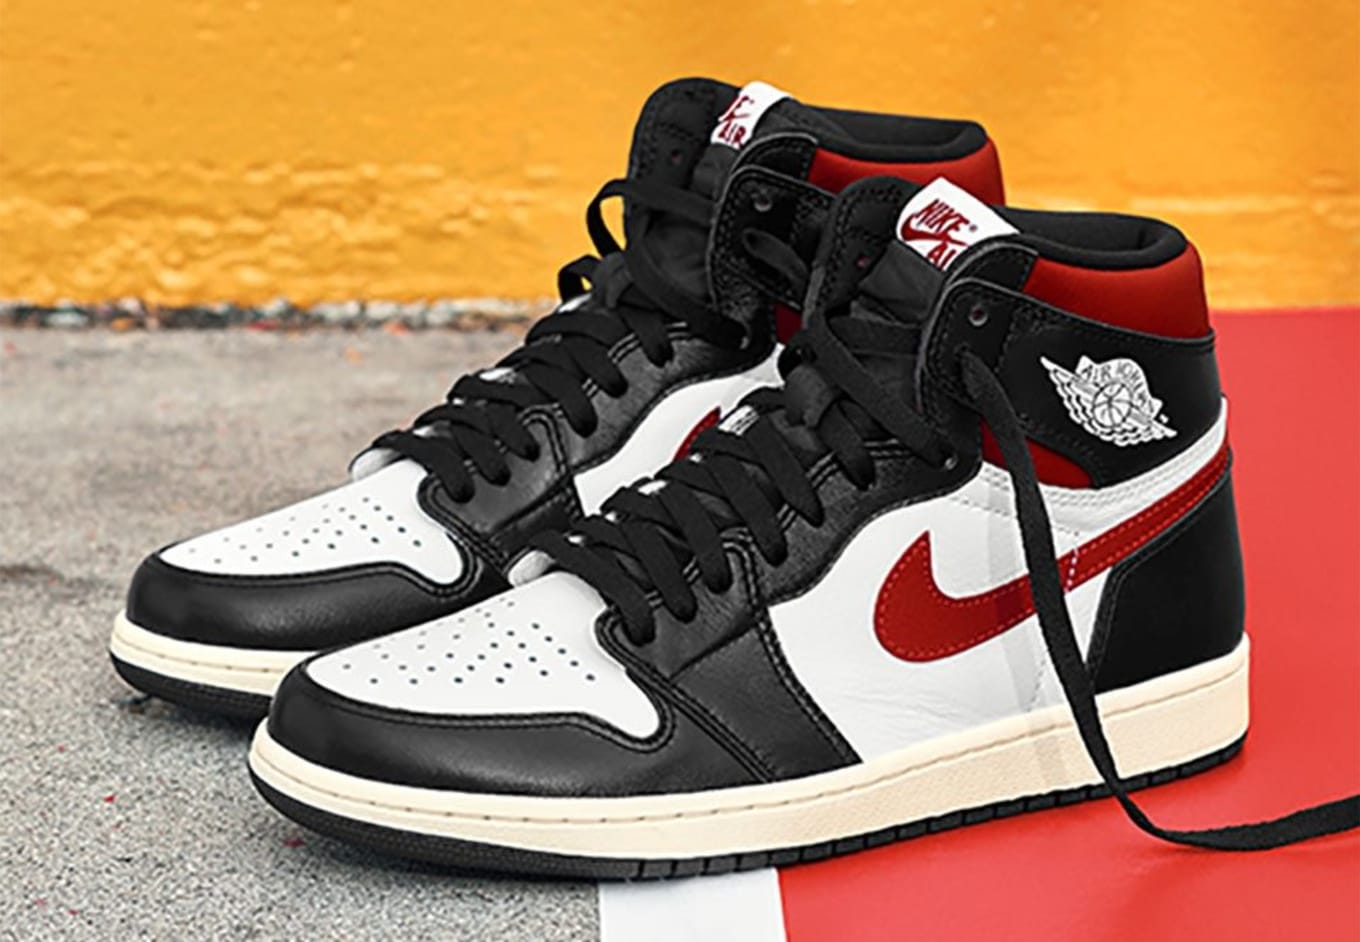 free shipping 07cb1 d9fe0 Air Jordan 1 Retro High OG 555088-061 Release Date Jun. 6 ...